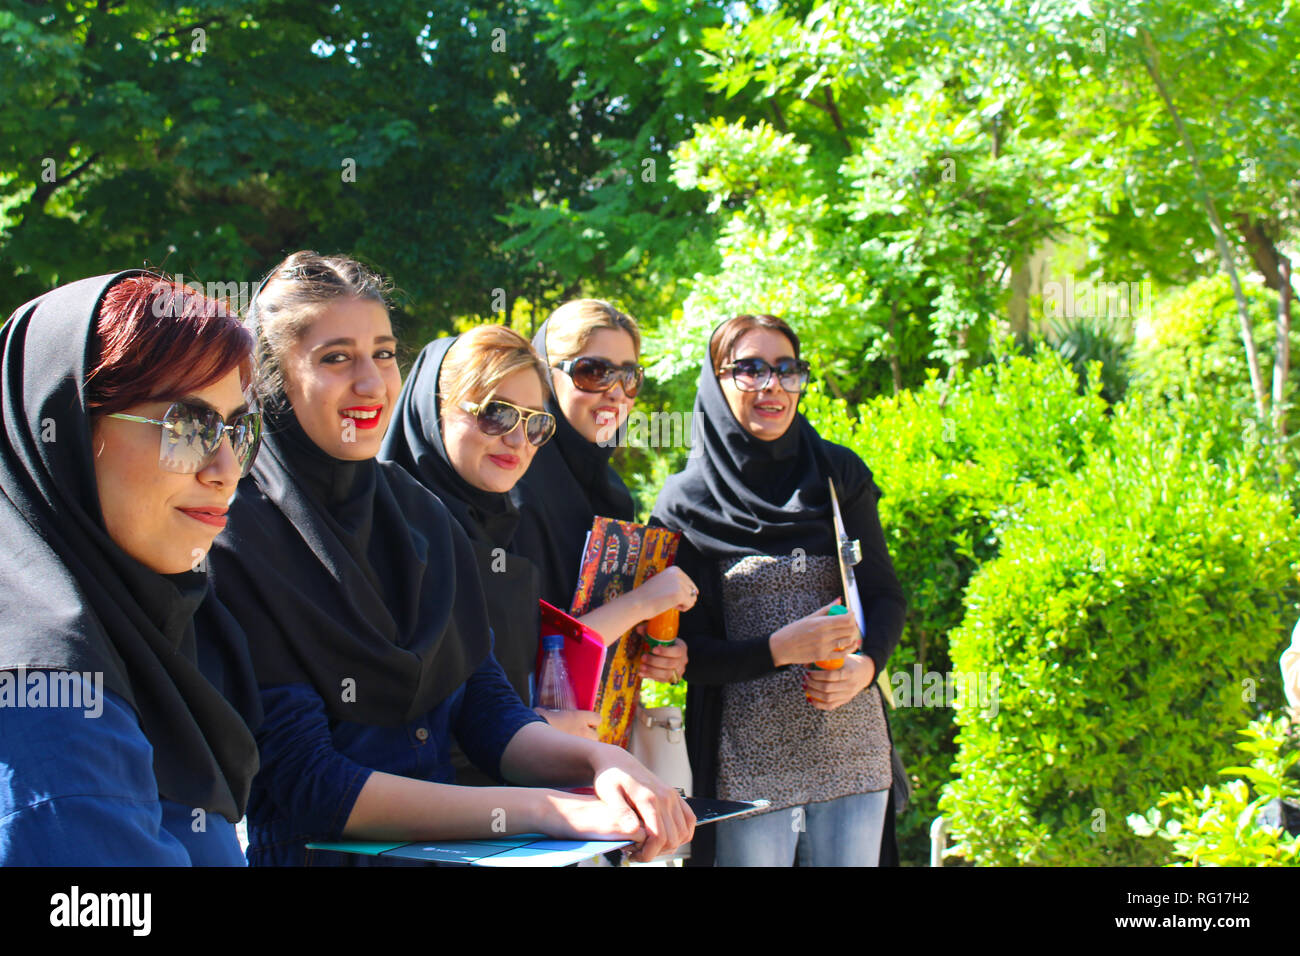 A group of young Iranian women with typical dress in a garden of Shiraz - Stock Image